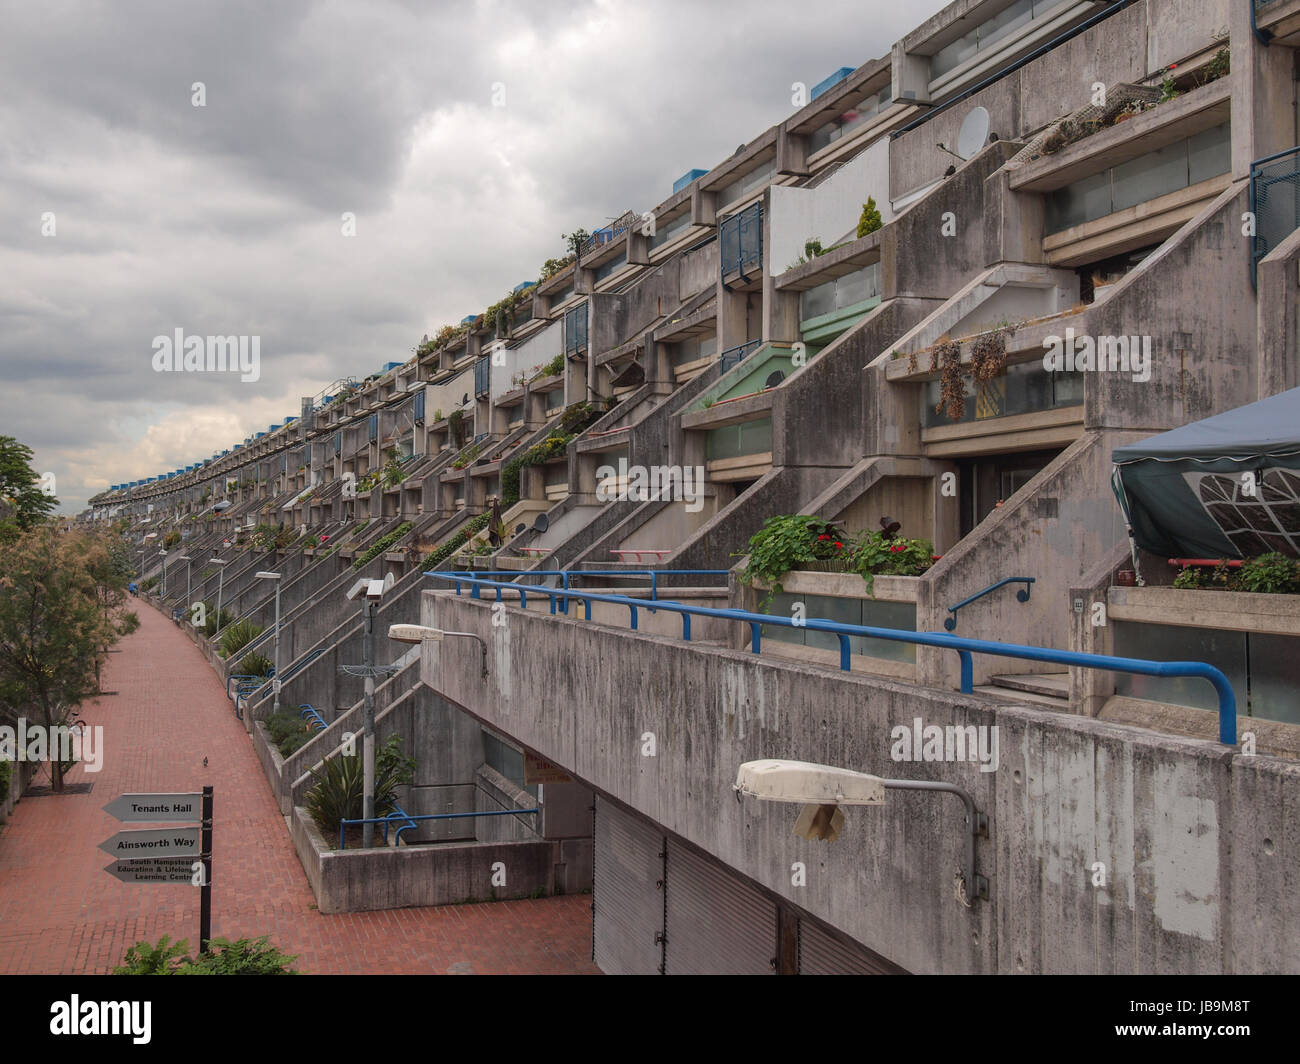 LONDON, ENGLAND, UK - JUNE 20, 2011: The Alexandra Road estate designed in 1968 by Neave Brown applies the terraced Stock Photo